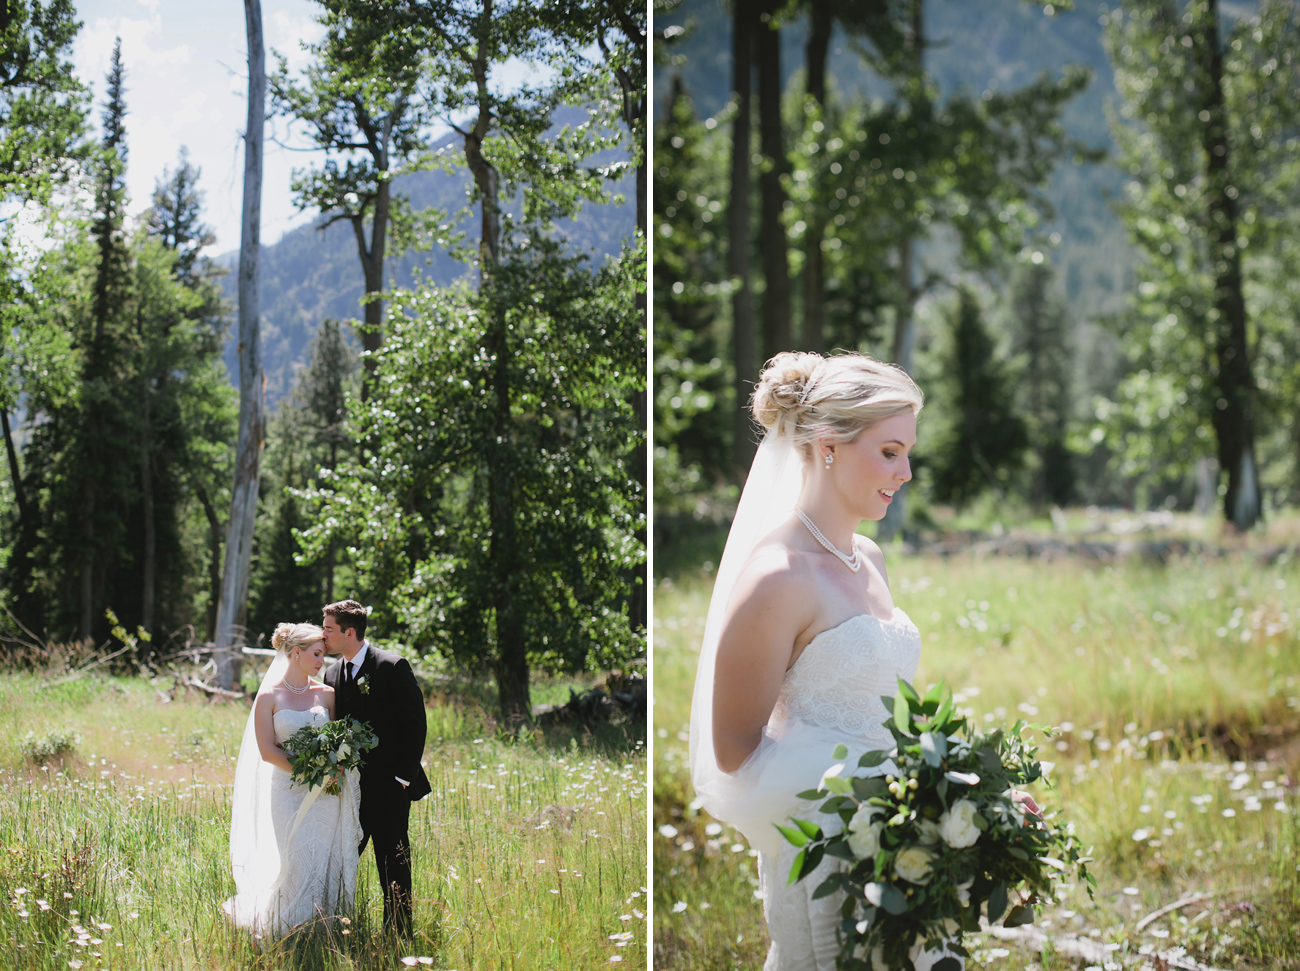 Eastern Oregon Lake Wallowa Wedding Photography by Ali Walker Walla Walla Wedding Photographer 033.JPG